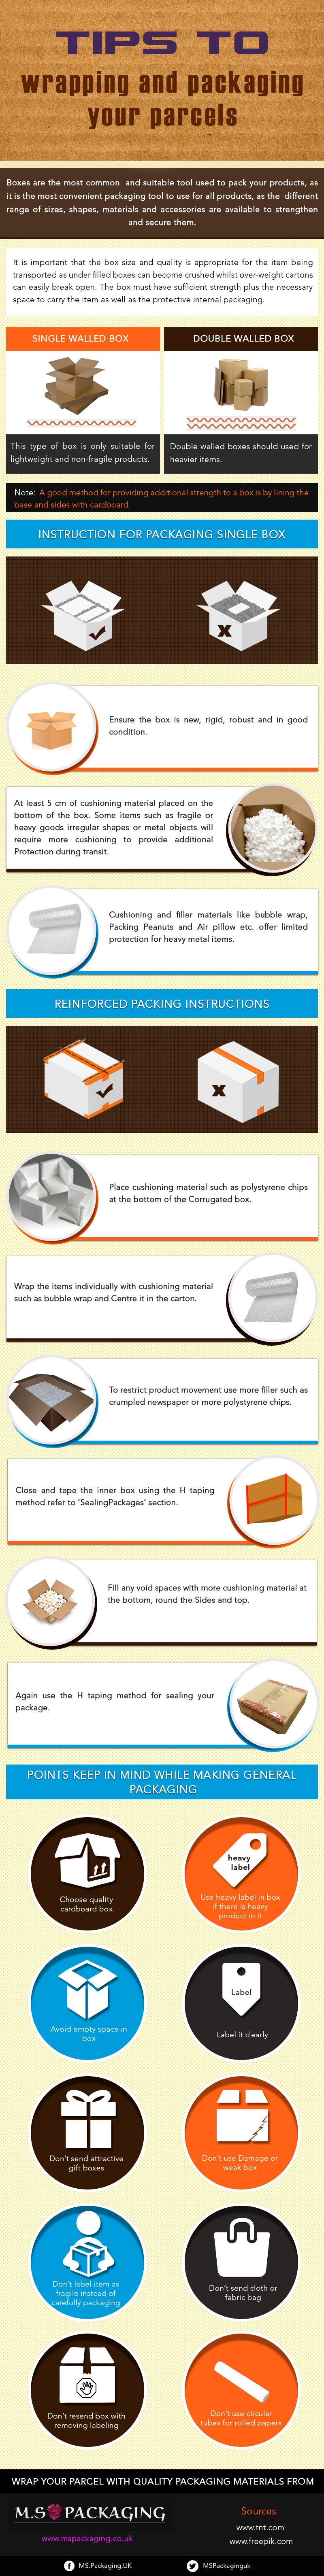 Tips to Wrapping and Packaging Your Parcels Safely and Securely